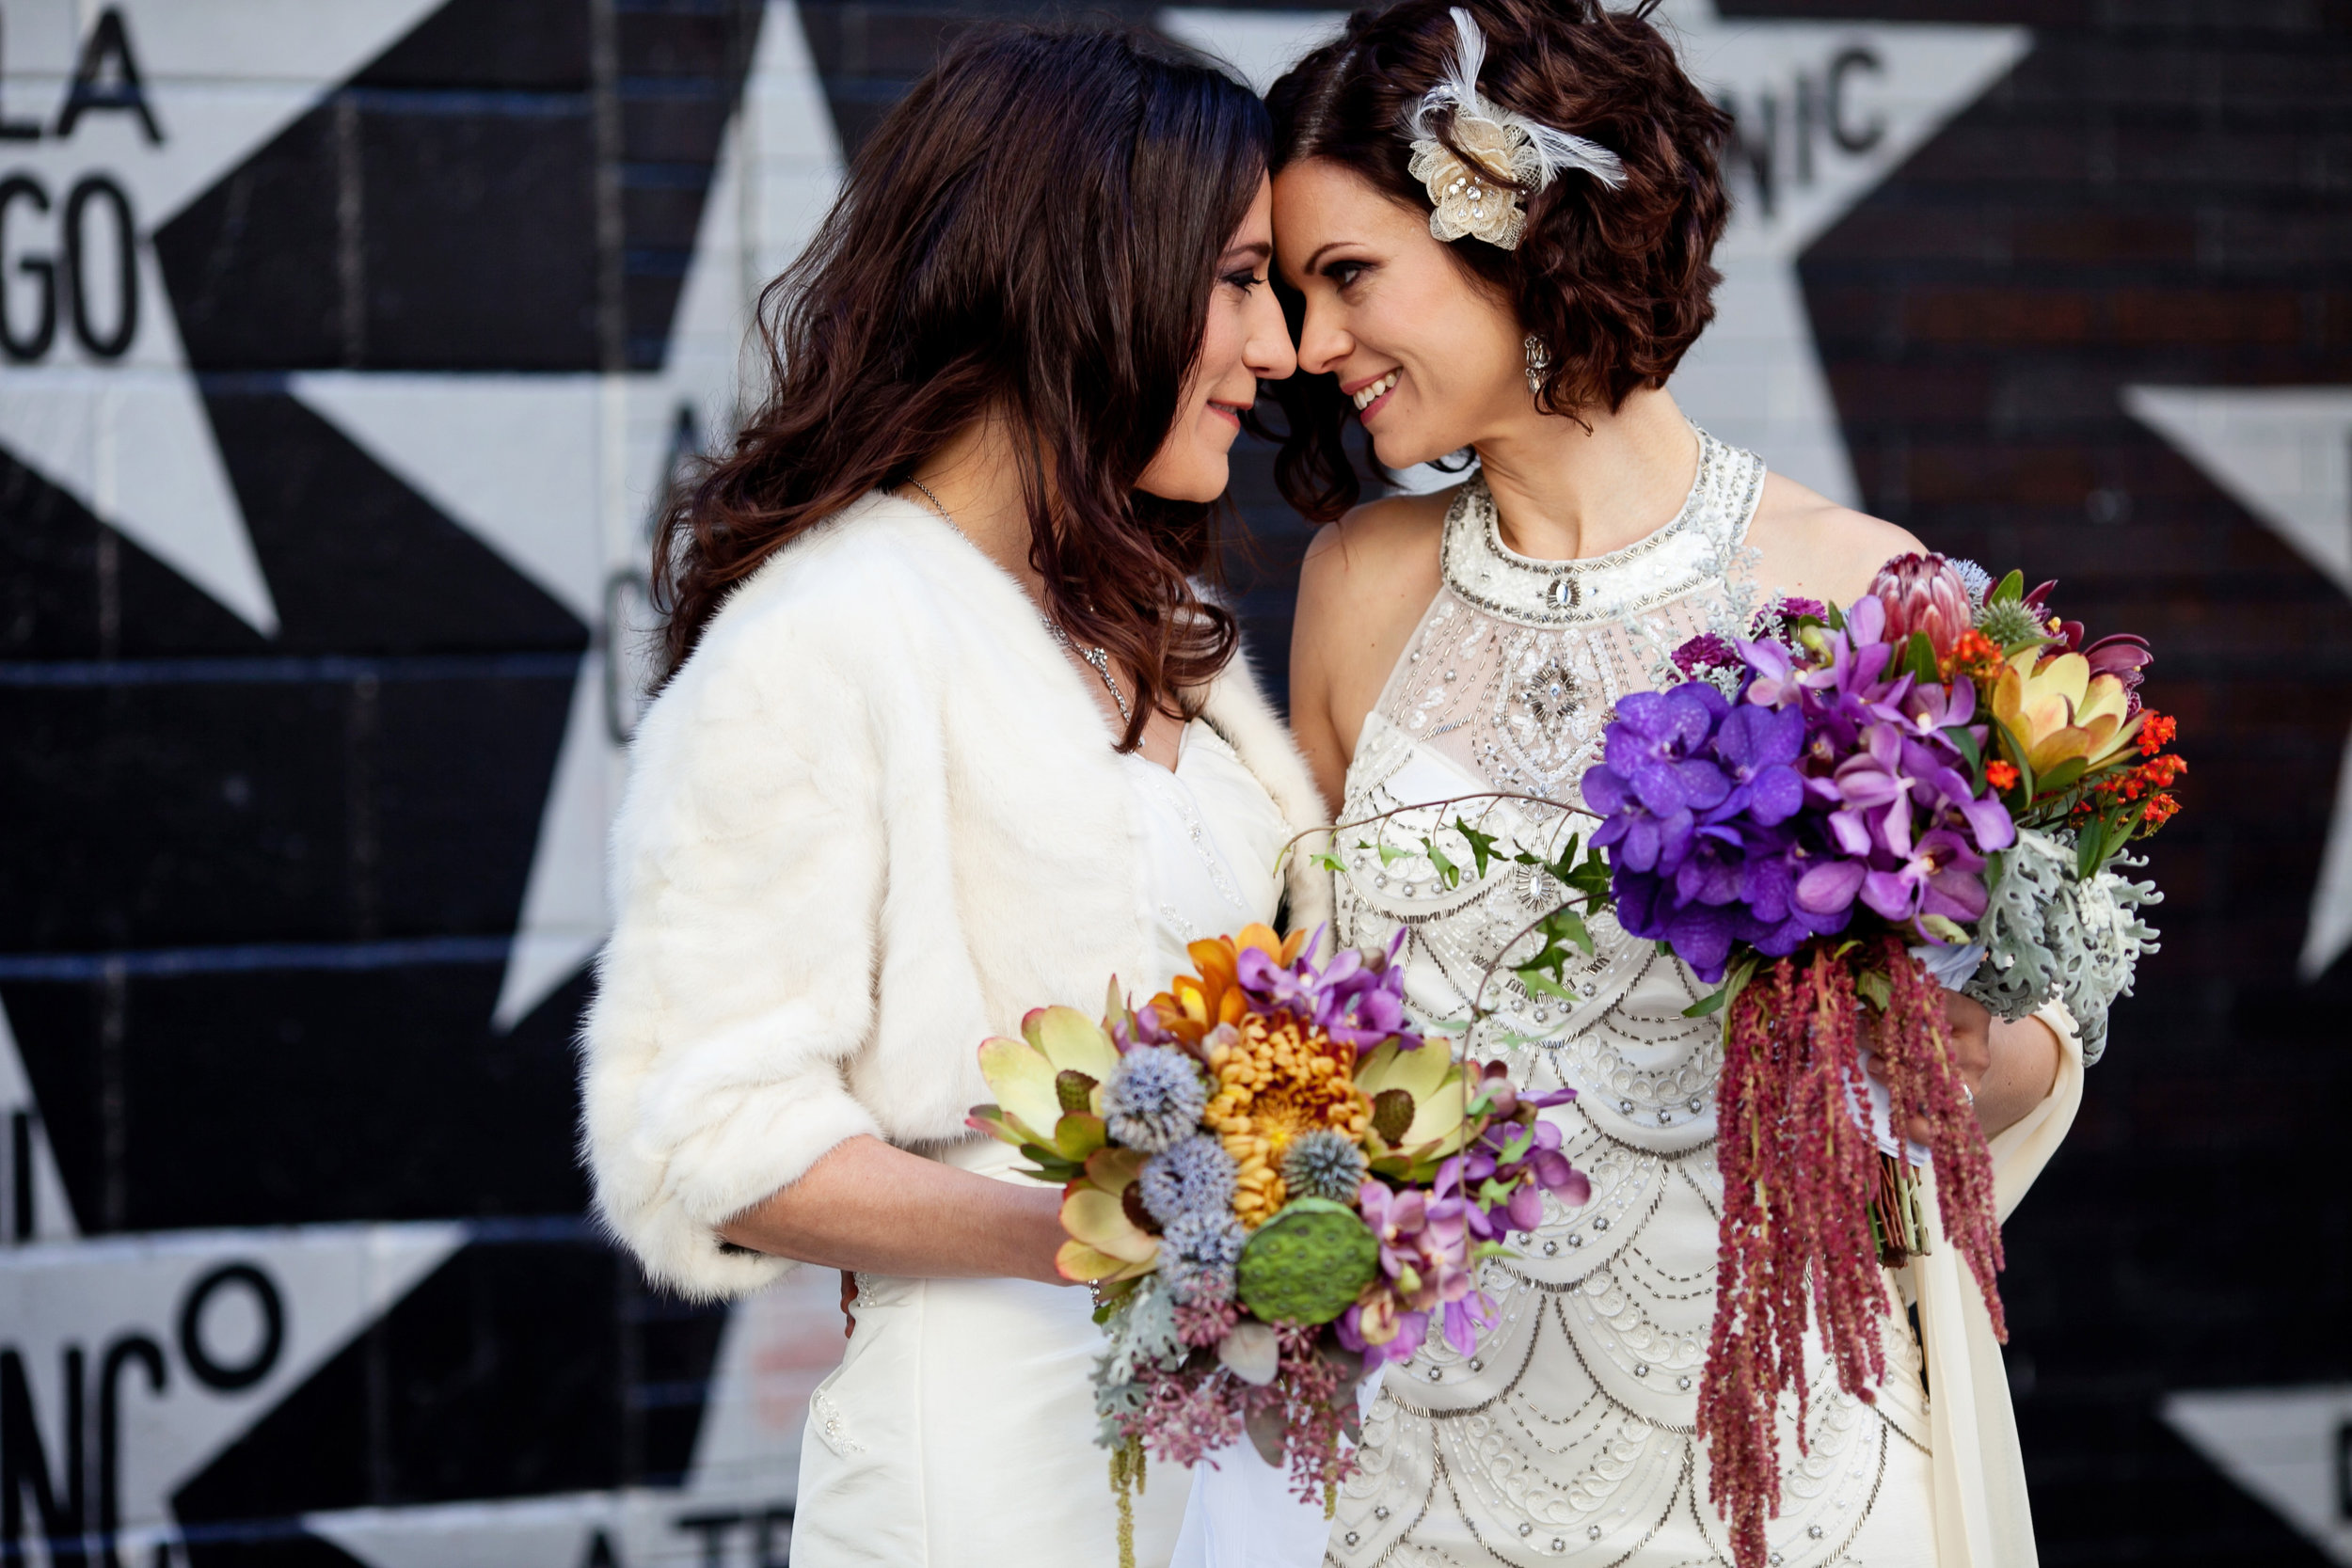 19  first look two brides two brides first look colorful bouquets both brides wear wedding dresses candid first look moment Life Design Events.jpg